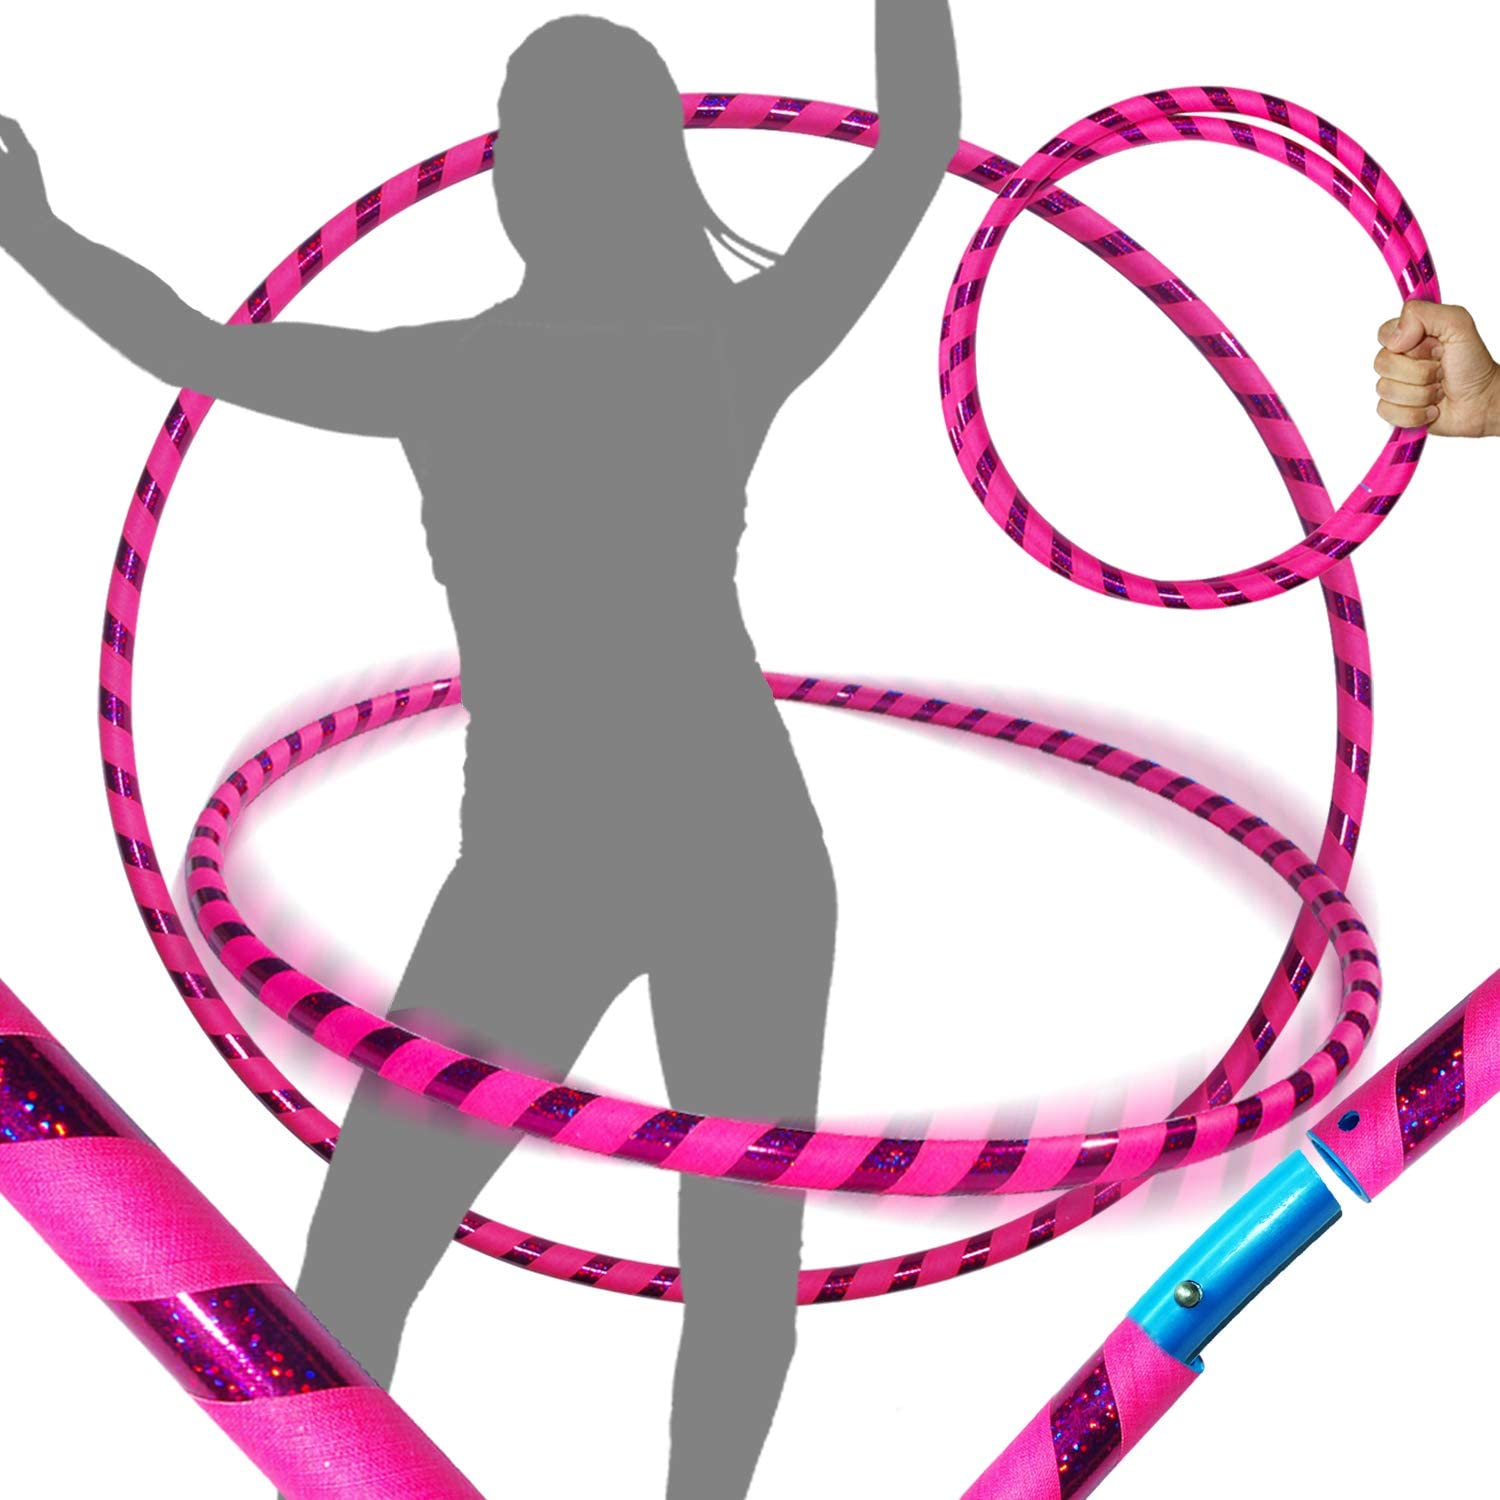 100cm//39 640g PRO Adult Hoops Same Day Dispatch! Weighted TRAVEL Hoop NO Instructions Needed Dance /& Fitness! Ultra-Grip//Glitter Deco Hoops For Exercise